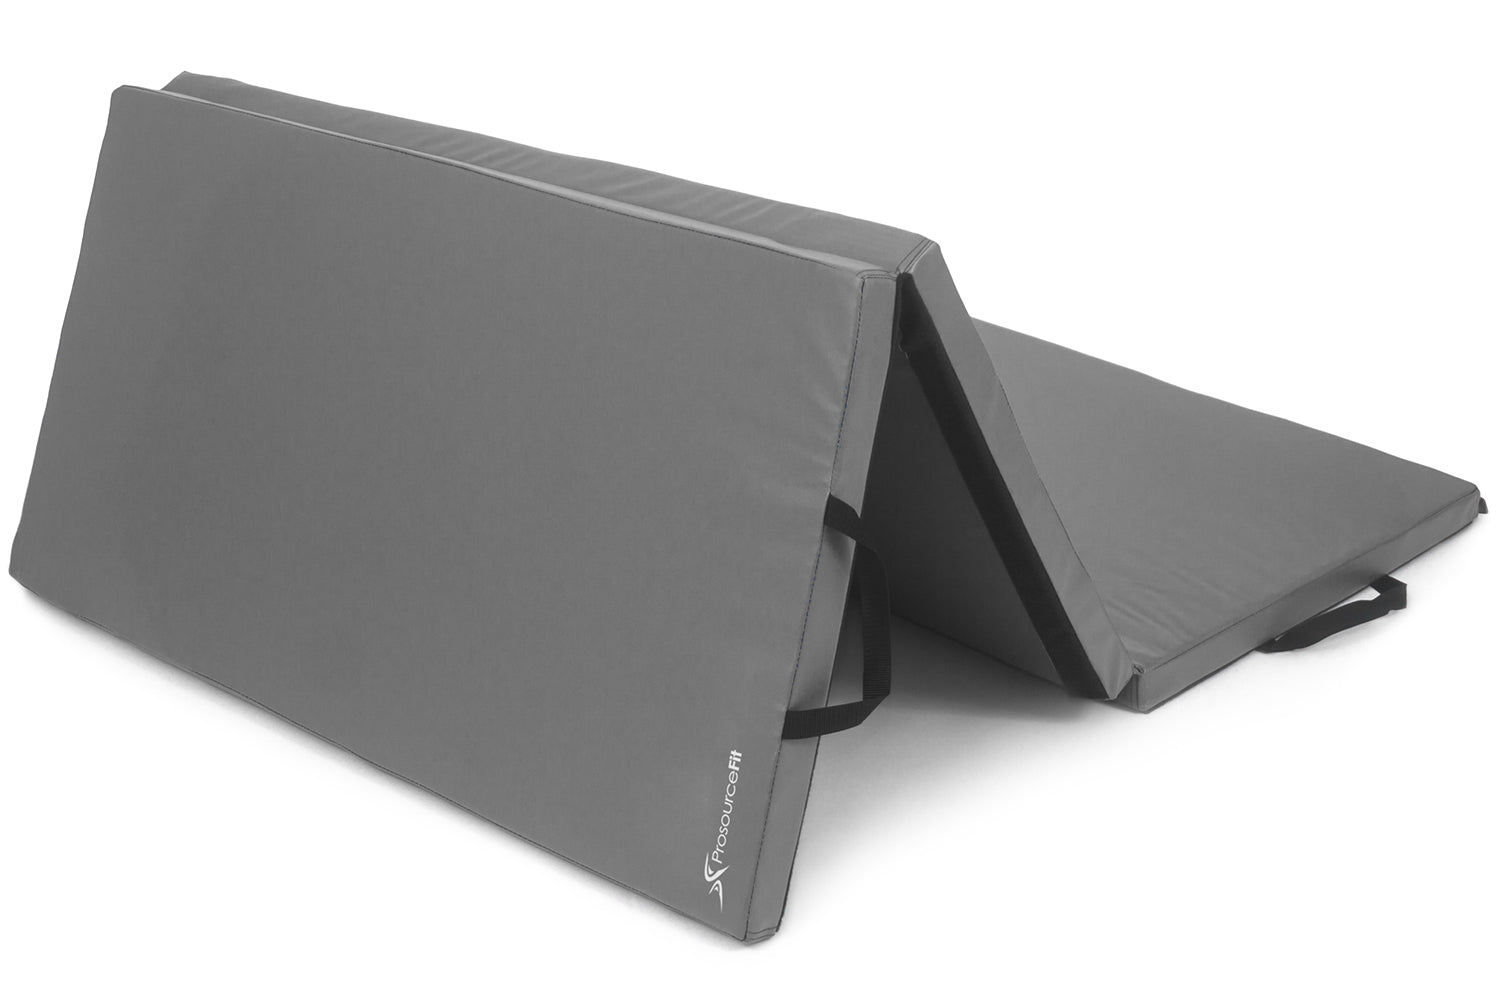 Grey Tri-Fold Folding Exercise Mat 6x4x2